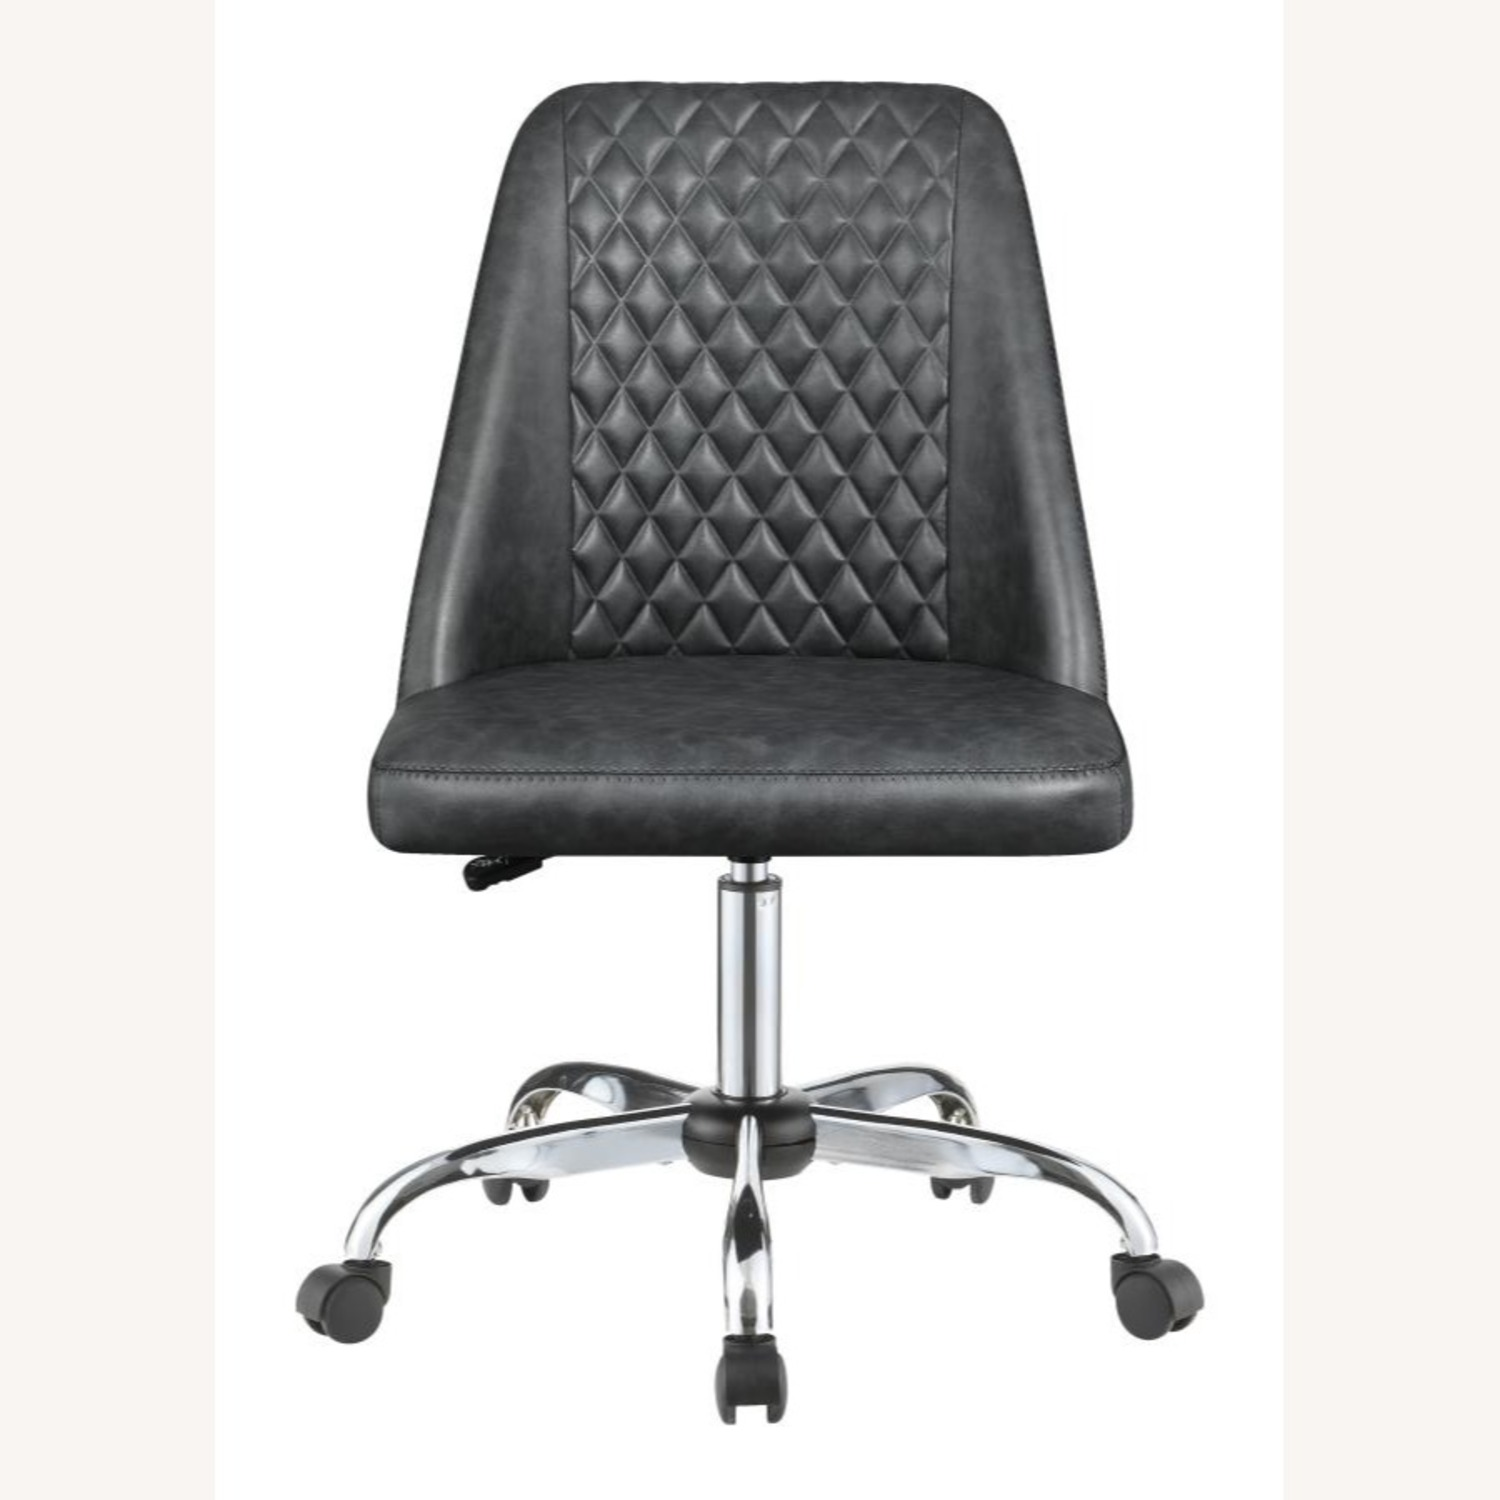 Office Chair In Tufted Grey Leatherette Upholstery - image-1